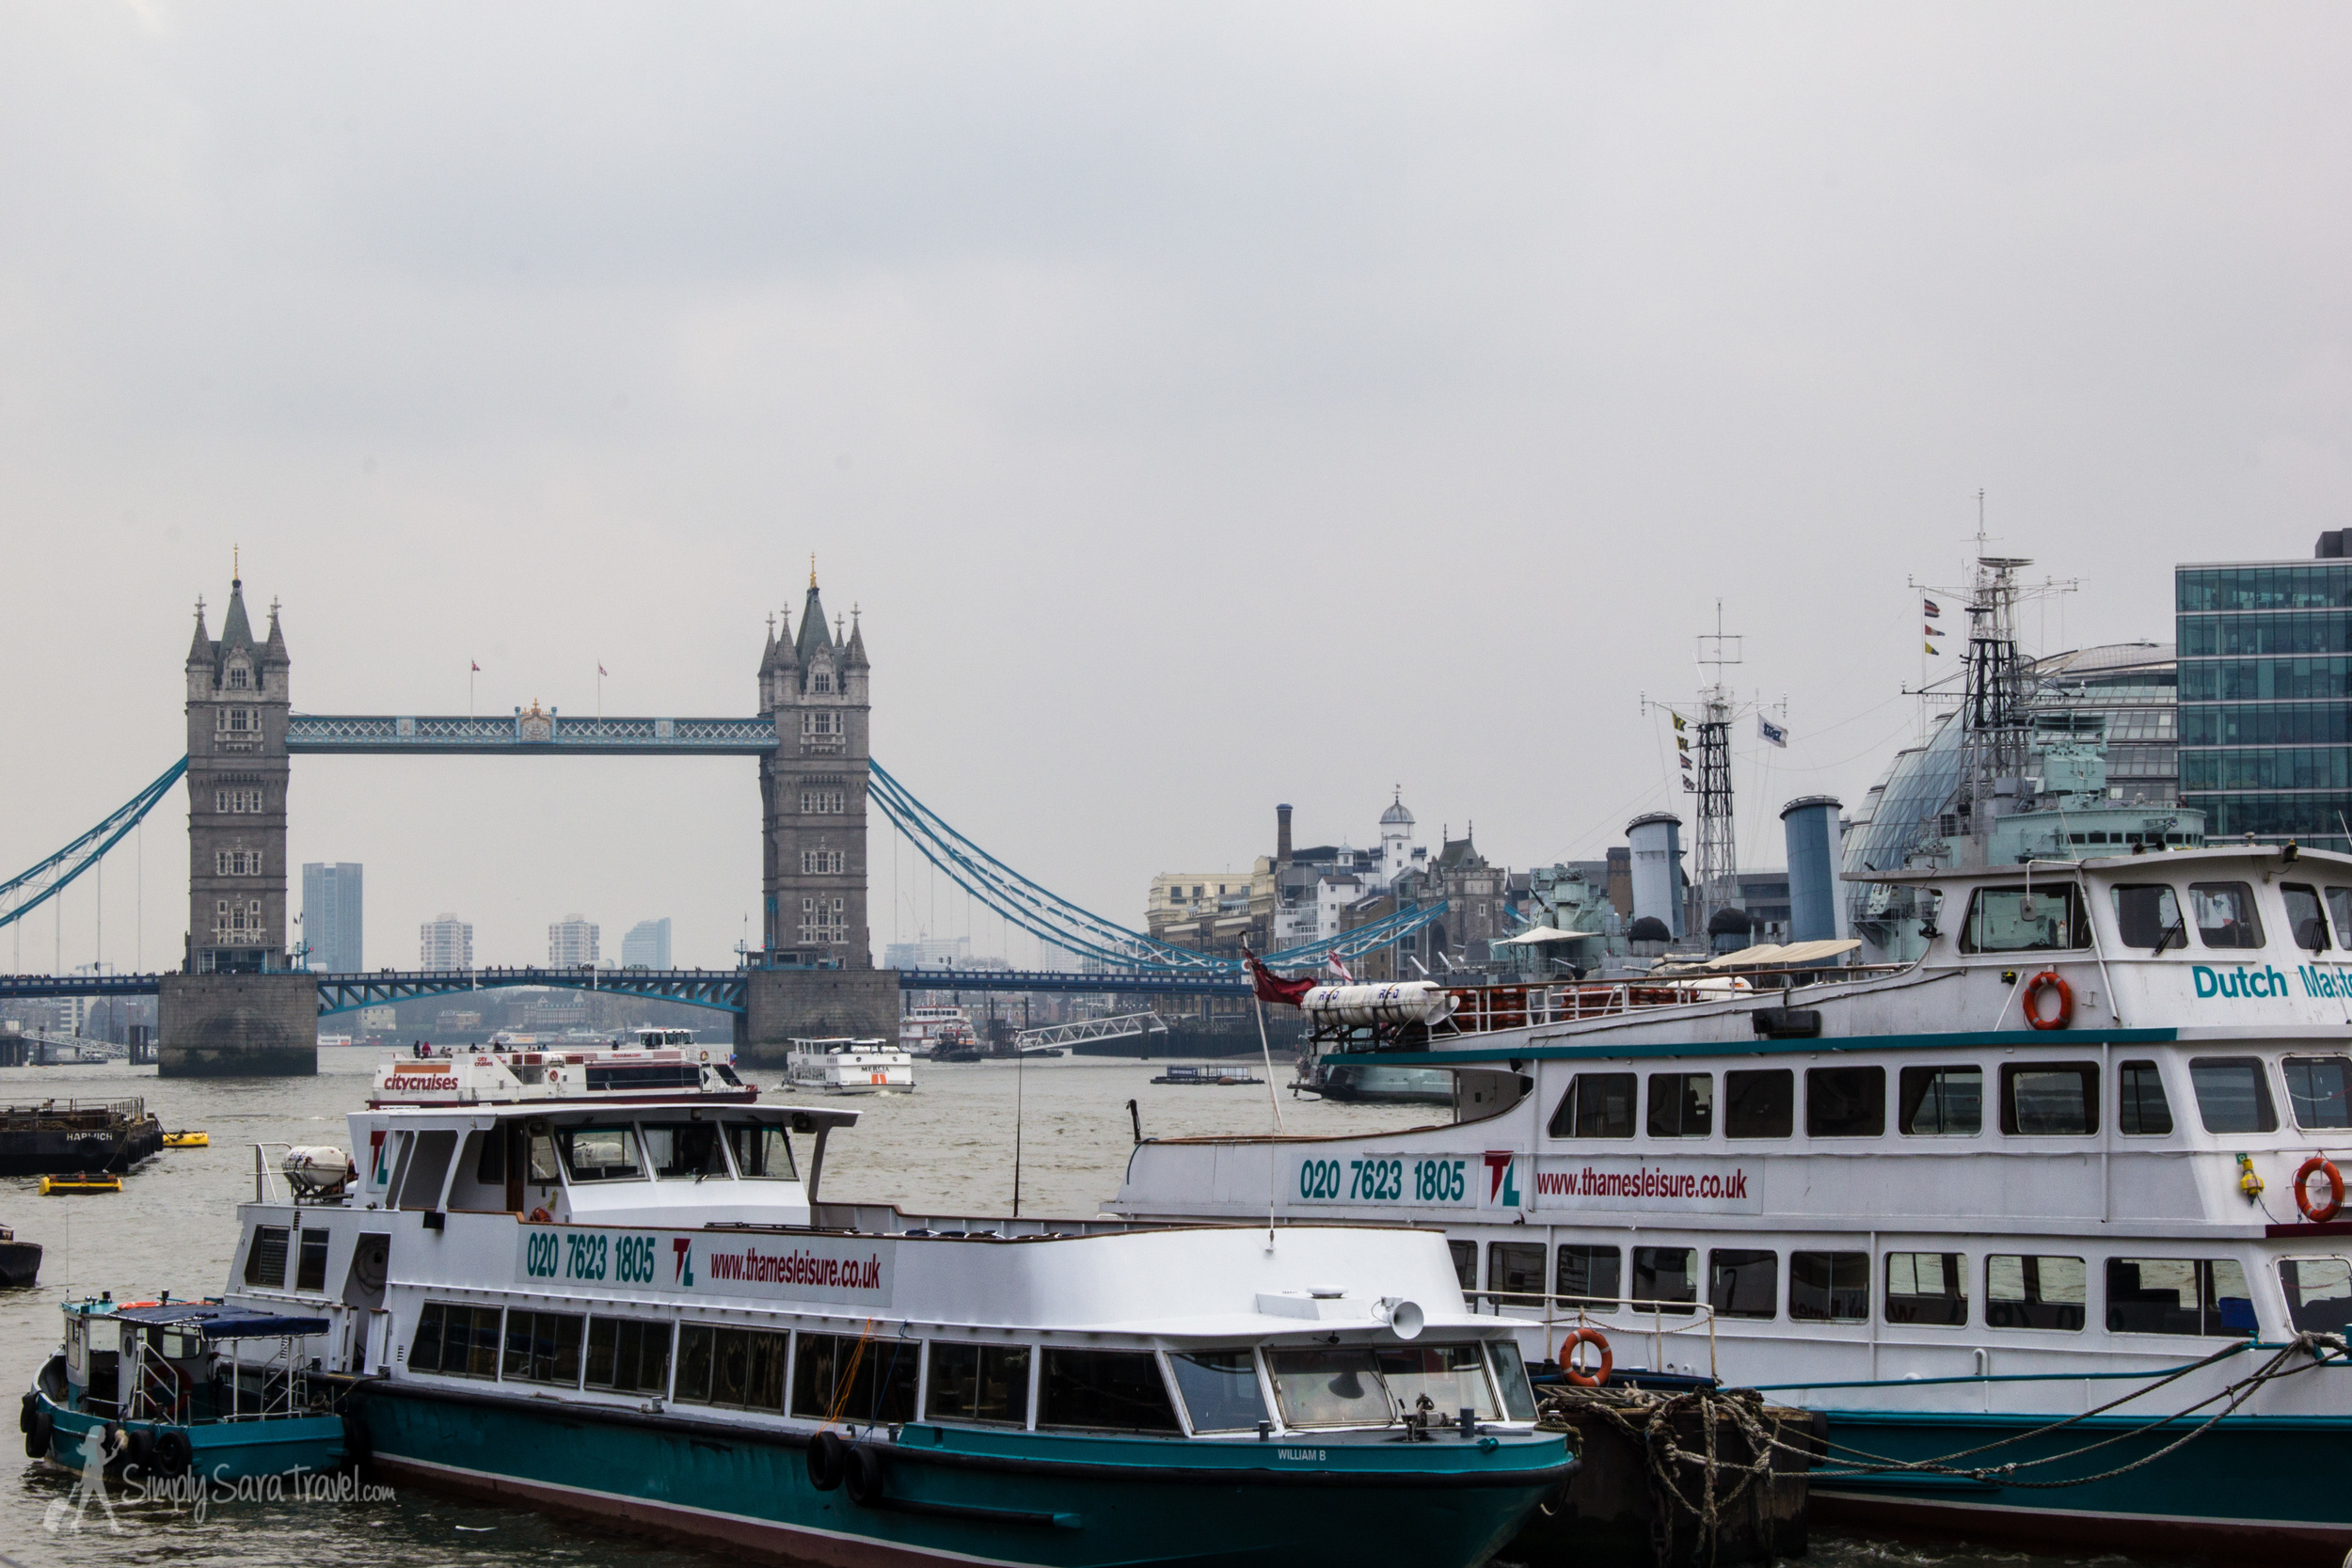 Walking along the Thames is an essential thing to do in London. Be sure to catch a glimpse of the beautiful Tower Bridge while at the river!